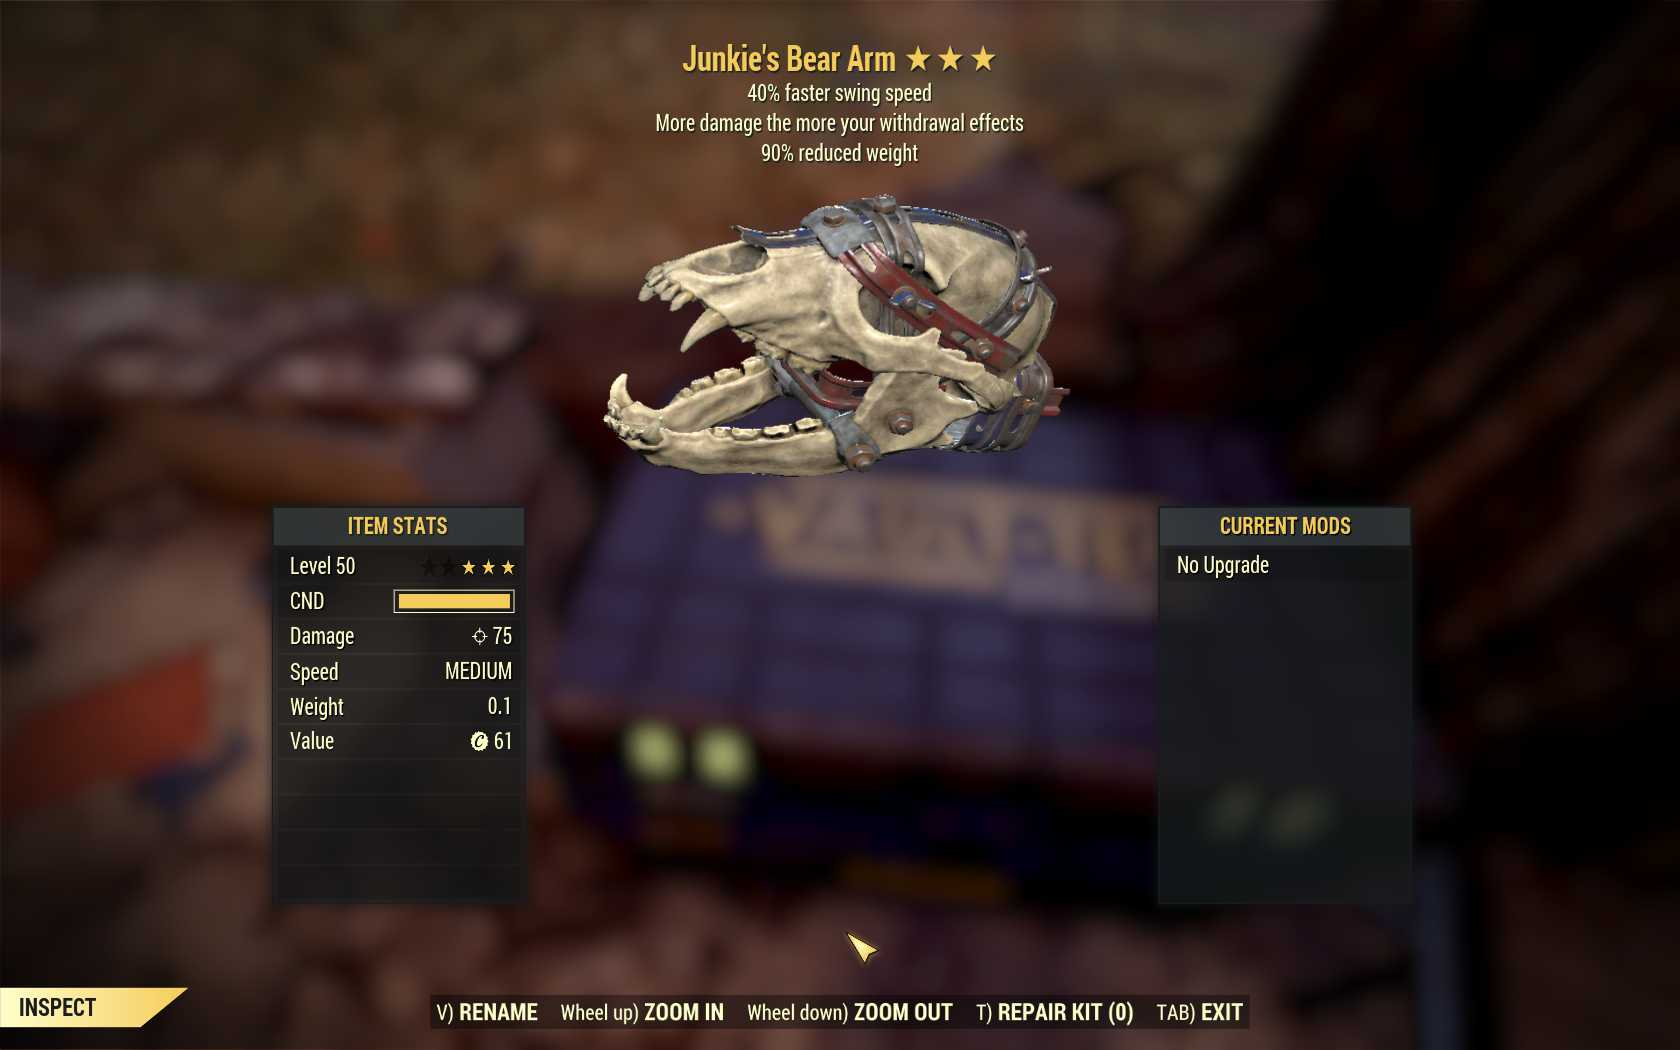 [3 Stars]Junkie's Bear Arm+40% Faster Swing Speed+90% reduced weight